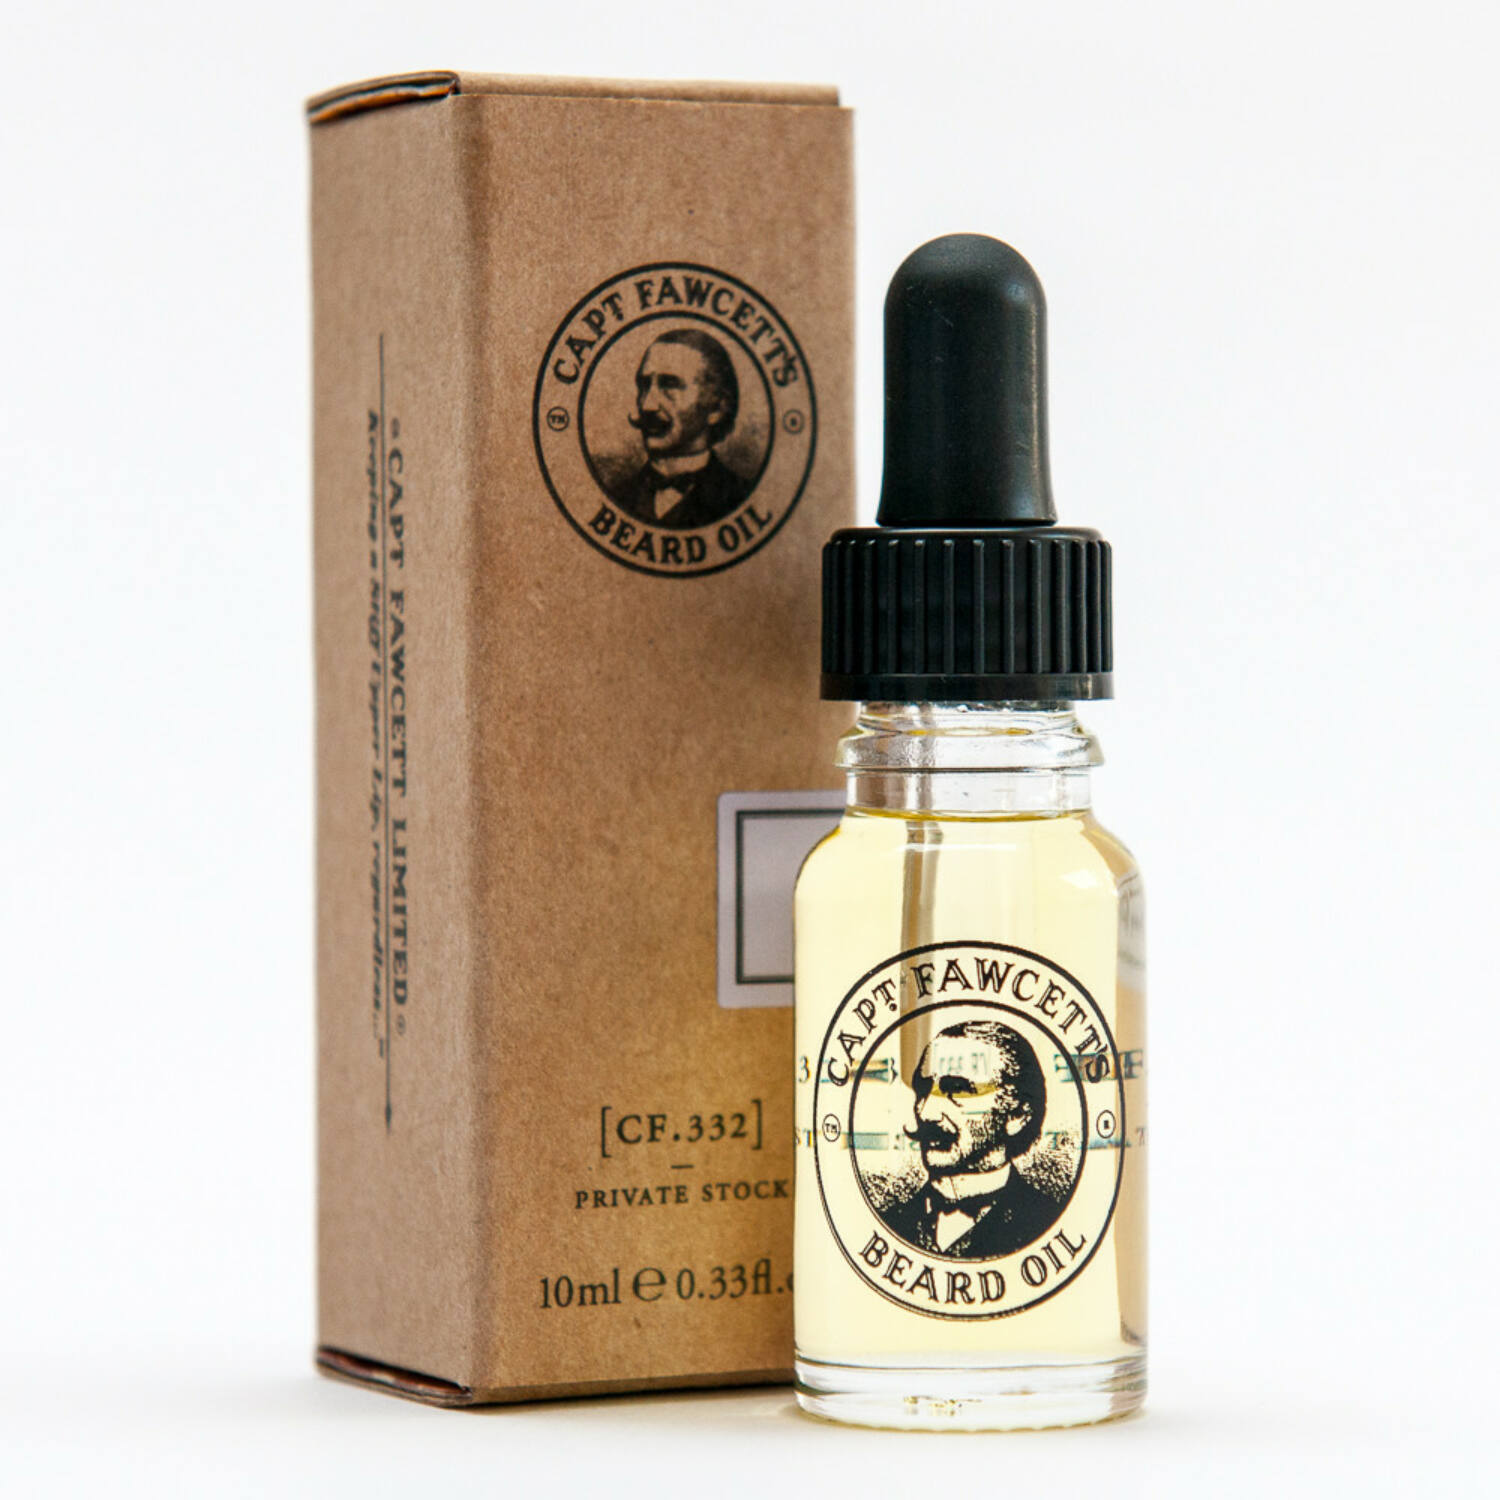 Captain Fawcett Private Stock szakállolaj 10ml